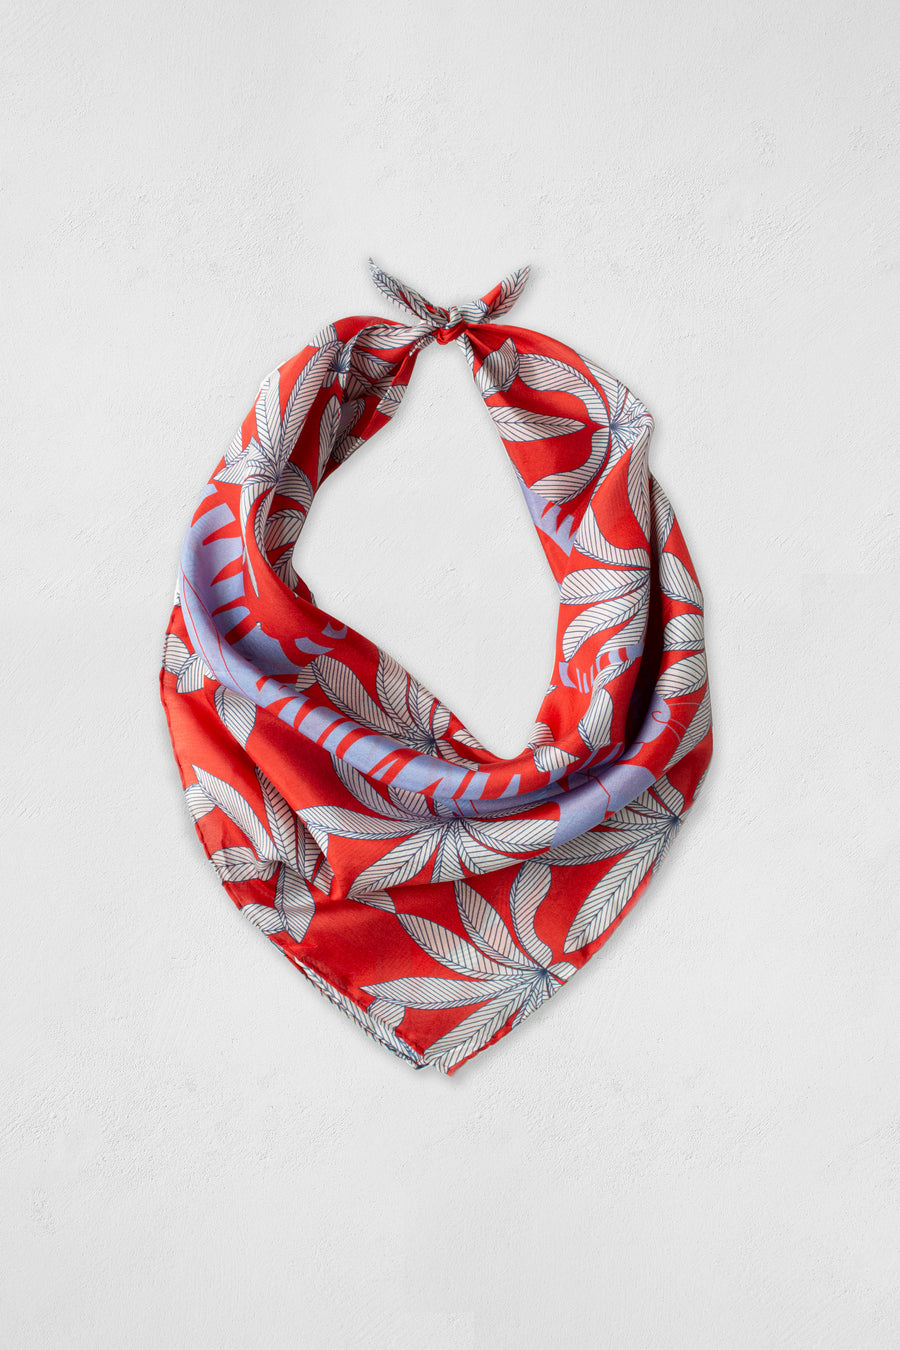 Visvasa - Red Small Scarf